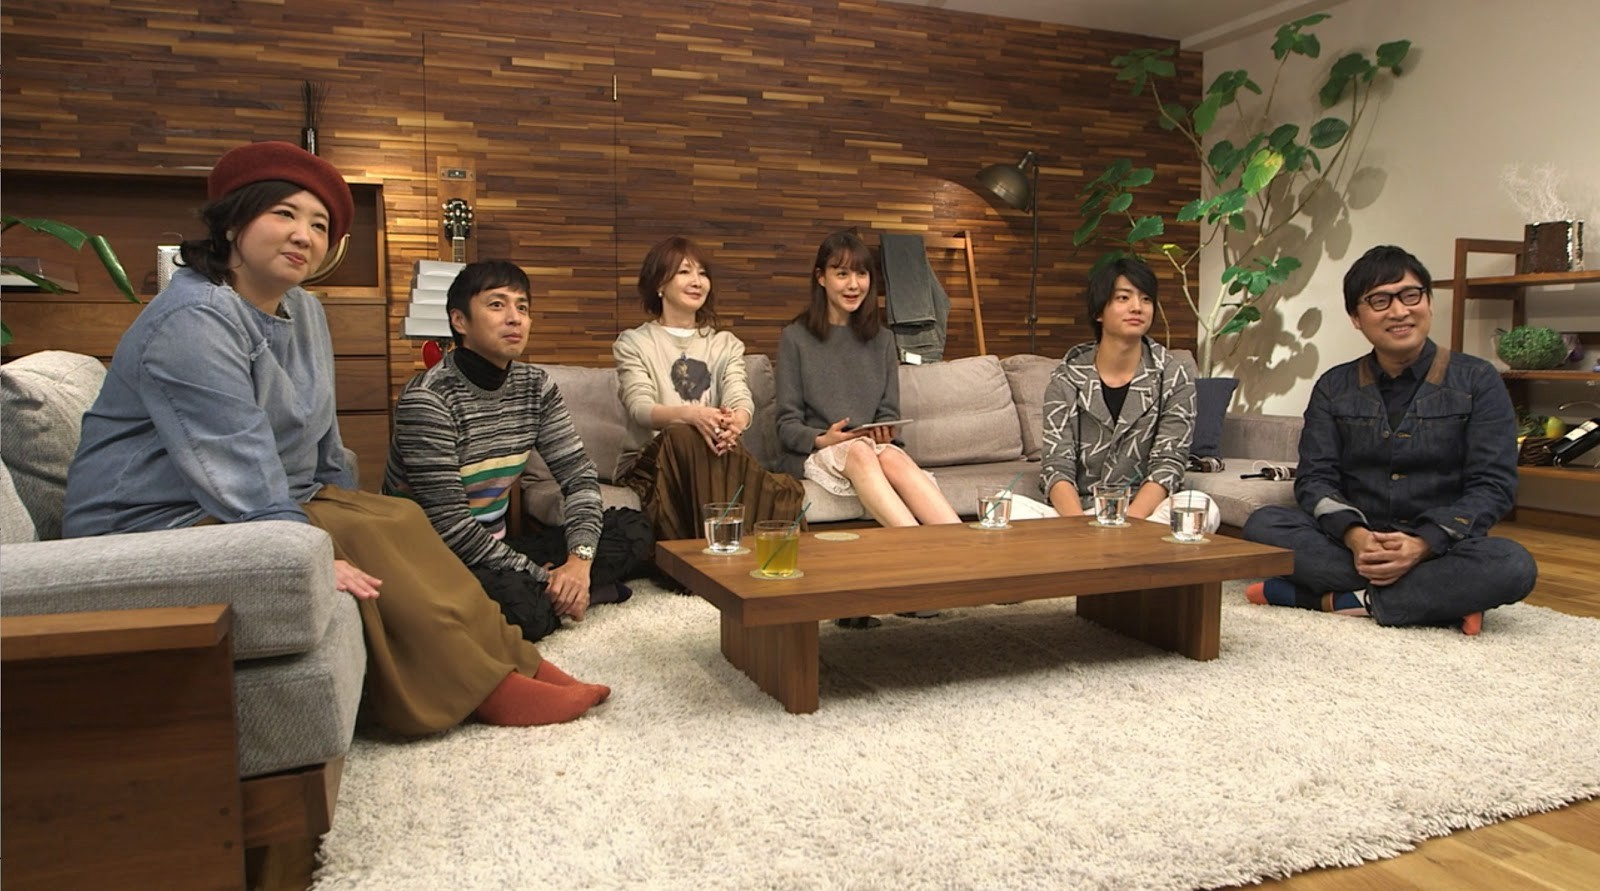 What makes japanese show terrace house a delightful for Terrace house reality show